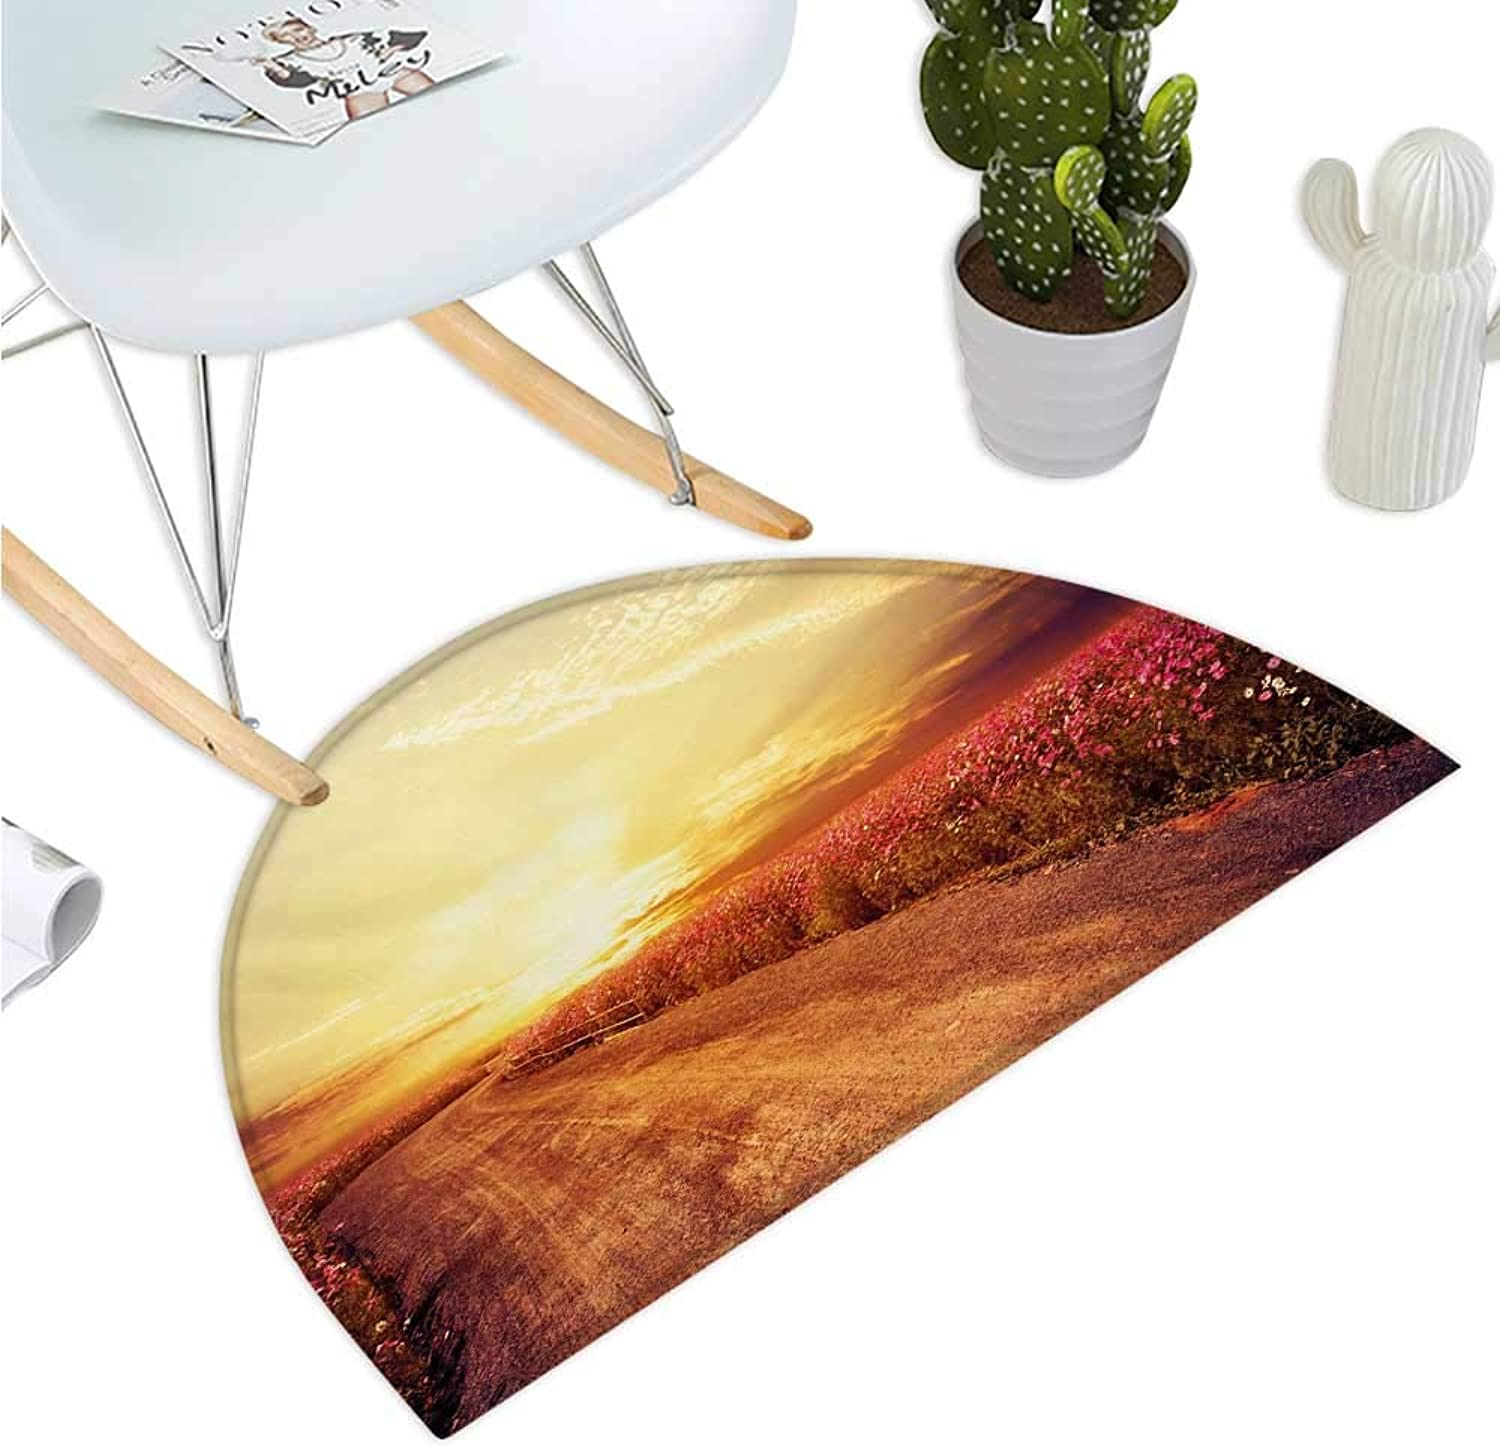 Scenery Half Round Door mats Floral Theme Landscape of Cosmos Flower Field in Sky Sunset Illustration Entry Door Mat H 43.3  xD 64.9  orange and Yellow